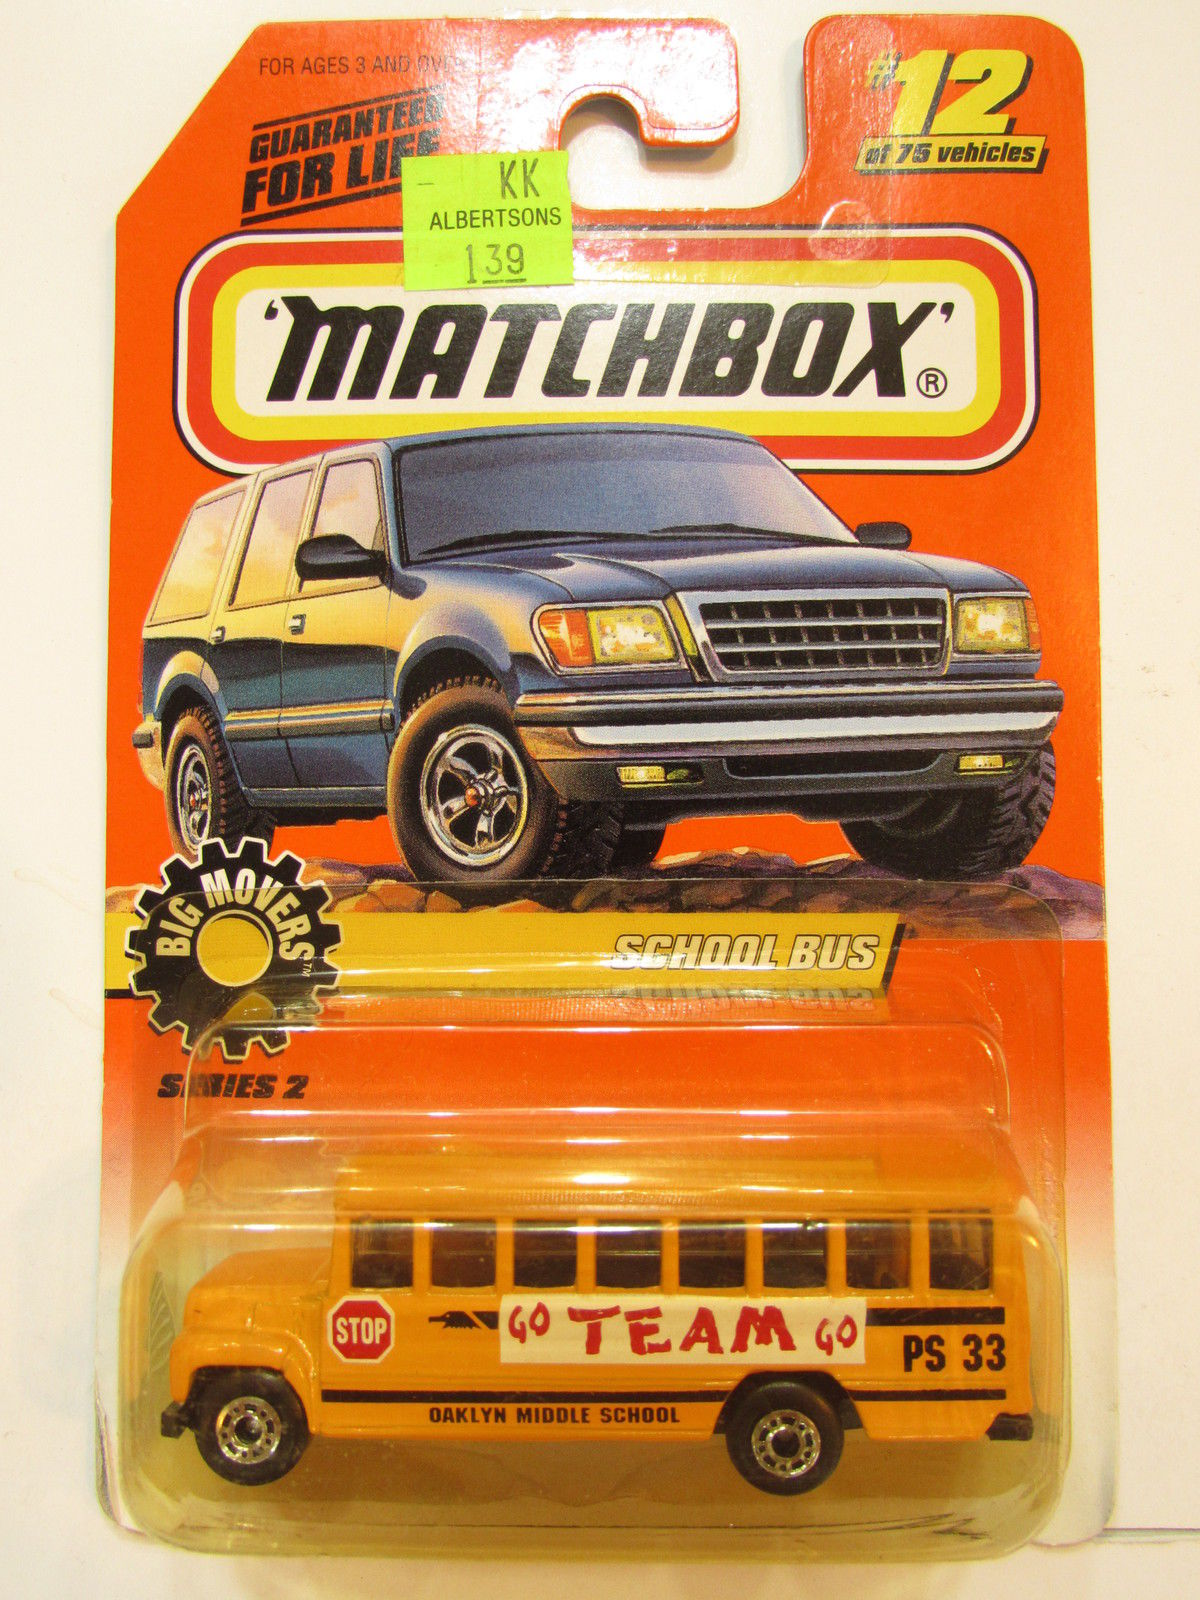 MATCHBOX 1998 #12/75 SCHOOL BUS - BIG MOVERS